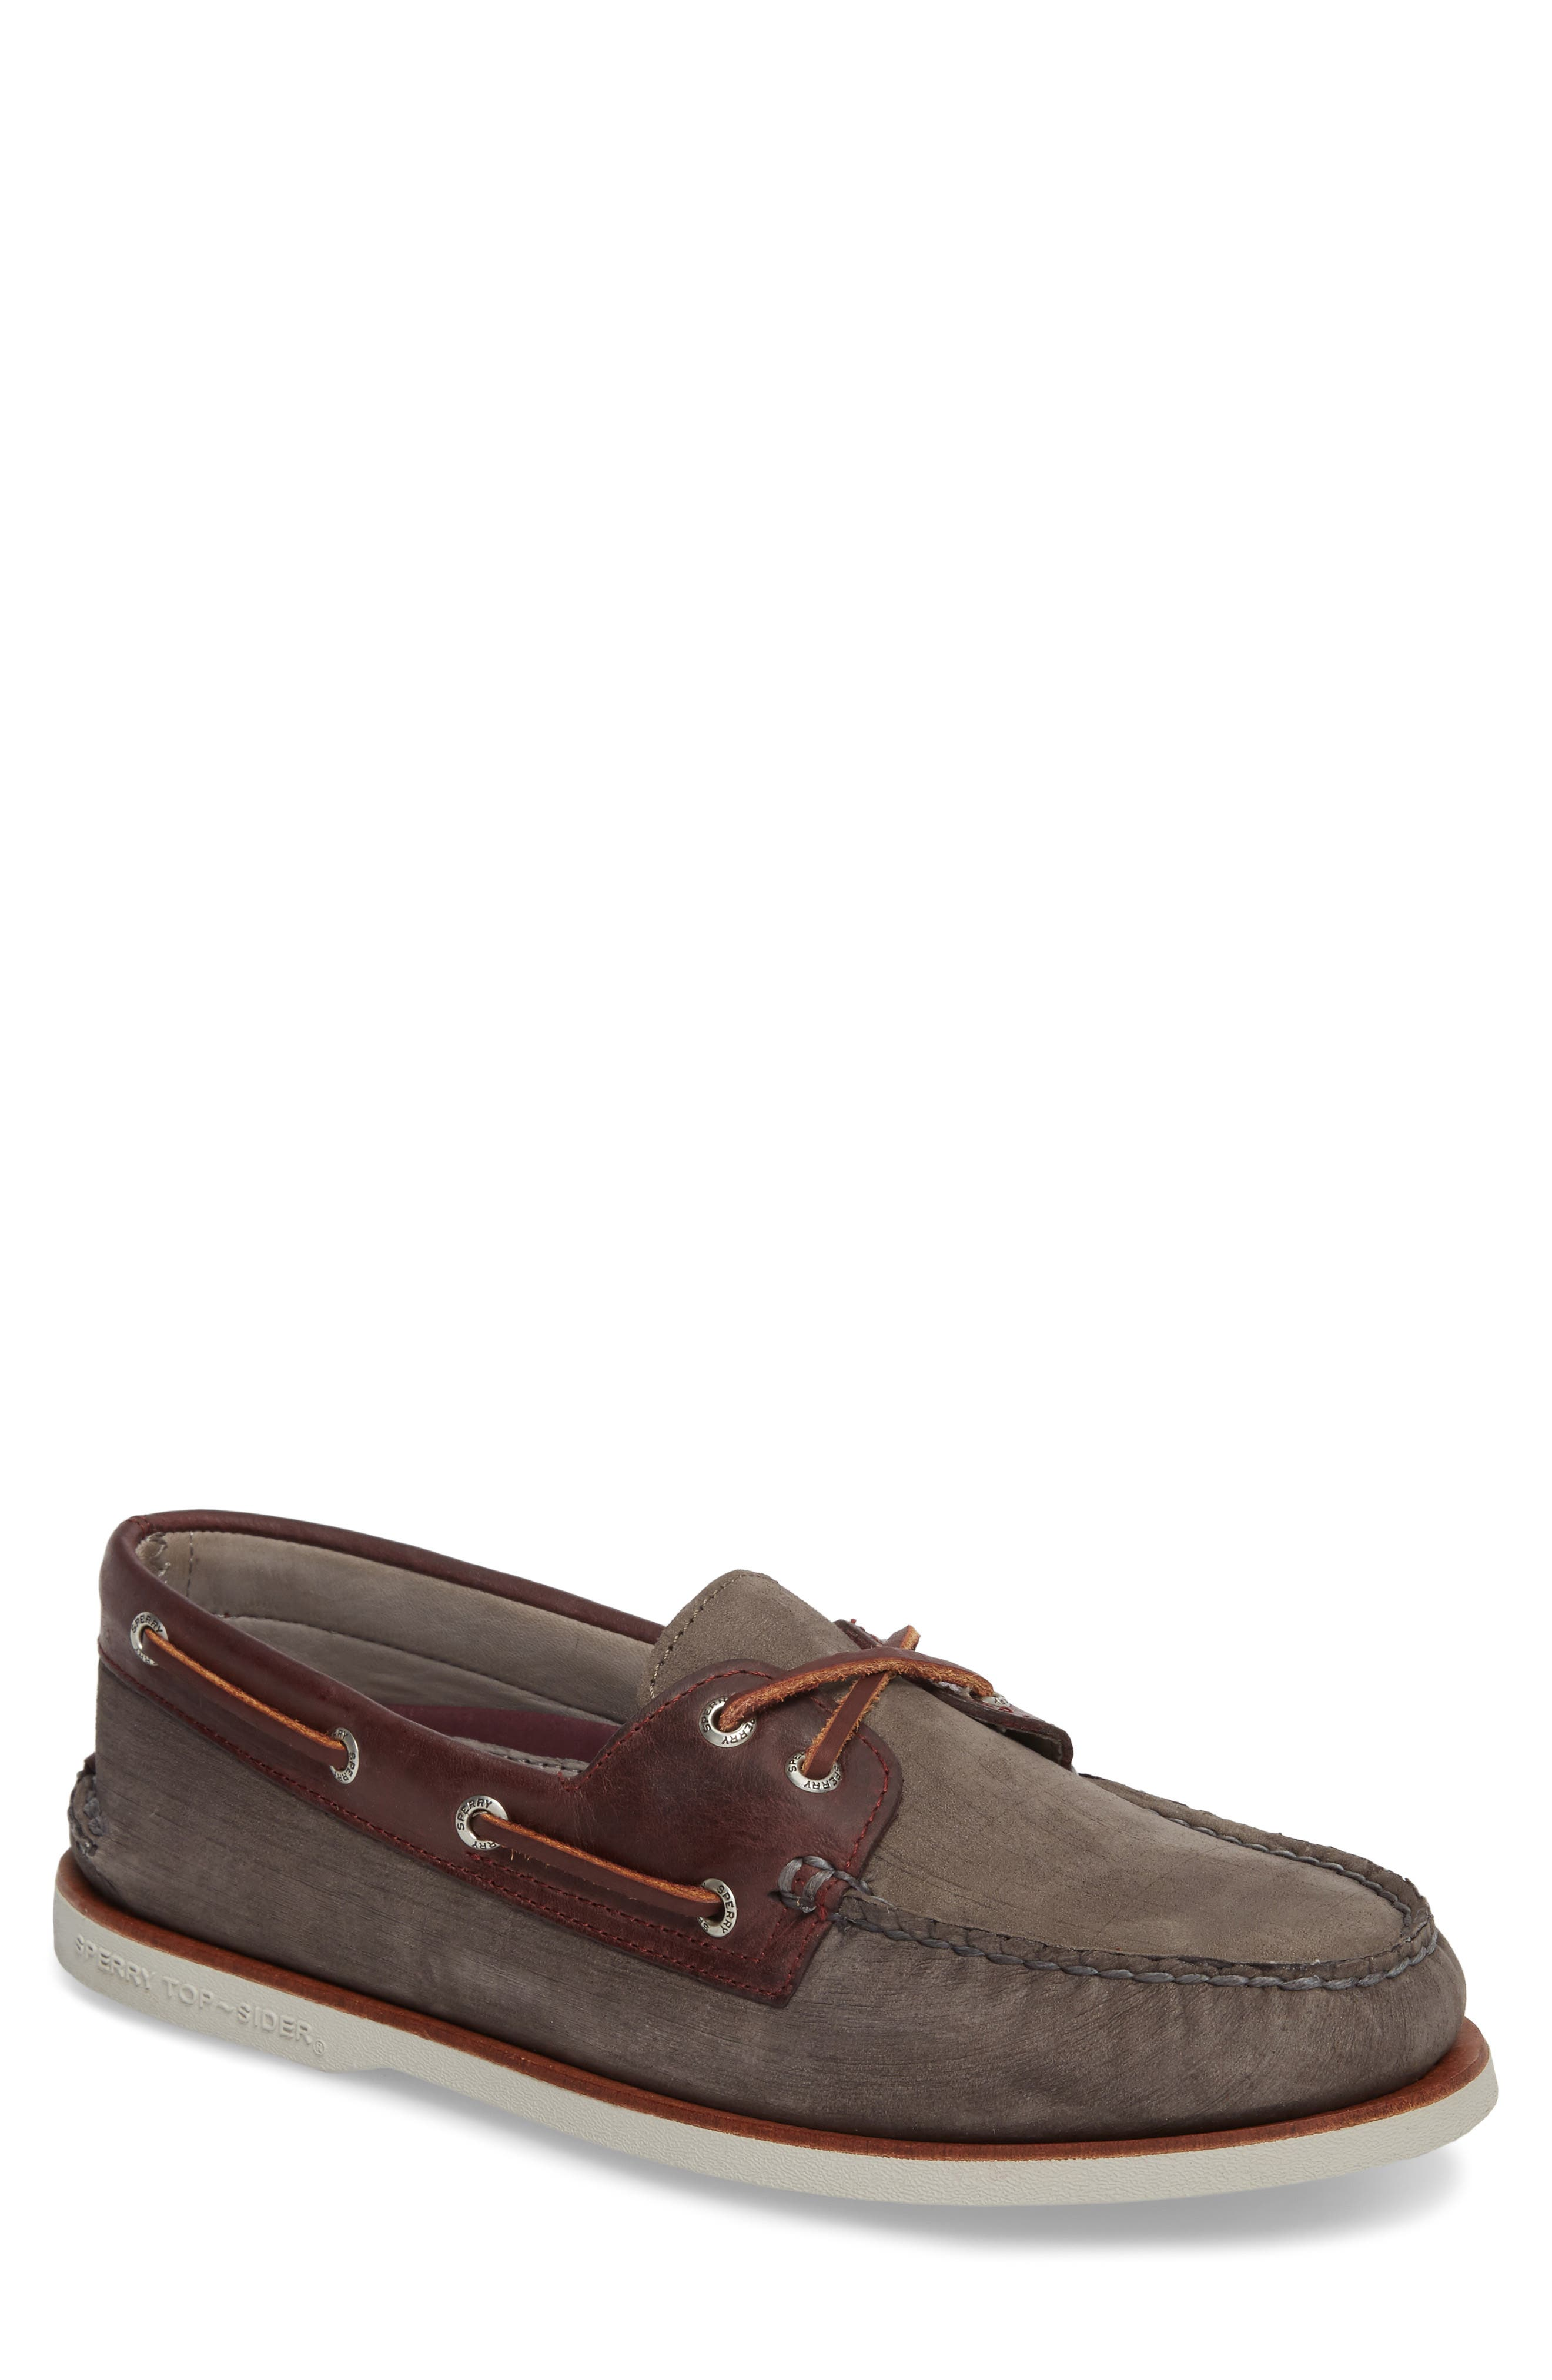 Gold Cup - Authentic Original Boat Shoe,                         Main,                         color, Grey/ Burgundy Leather Nubuck